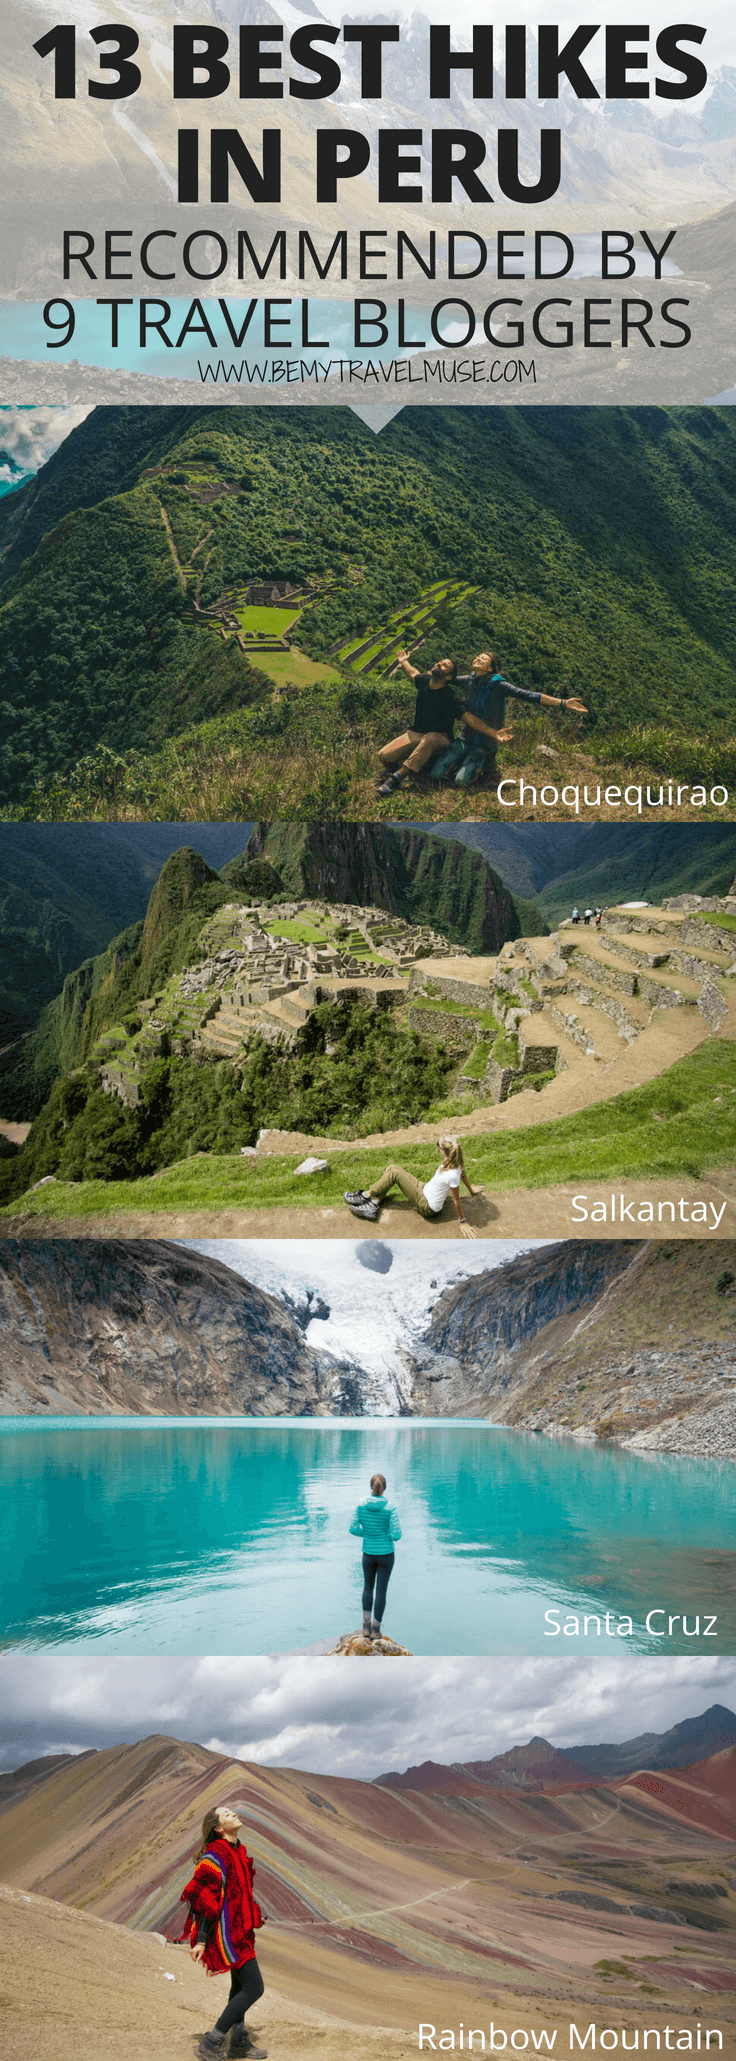 In this list, 9 travel bloggers share their favorite hikes in Peru. Planning for an adventure in Peru, but don't know which hiking trails are the best? This list covers popular trails, off the beaten path trails, easy, moderate and difficult hikes, plus secret tips, that will help you plan a perfect South America outdoor adventure in Peru #Peru #HikingTips